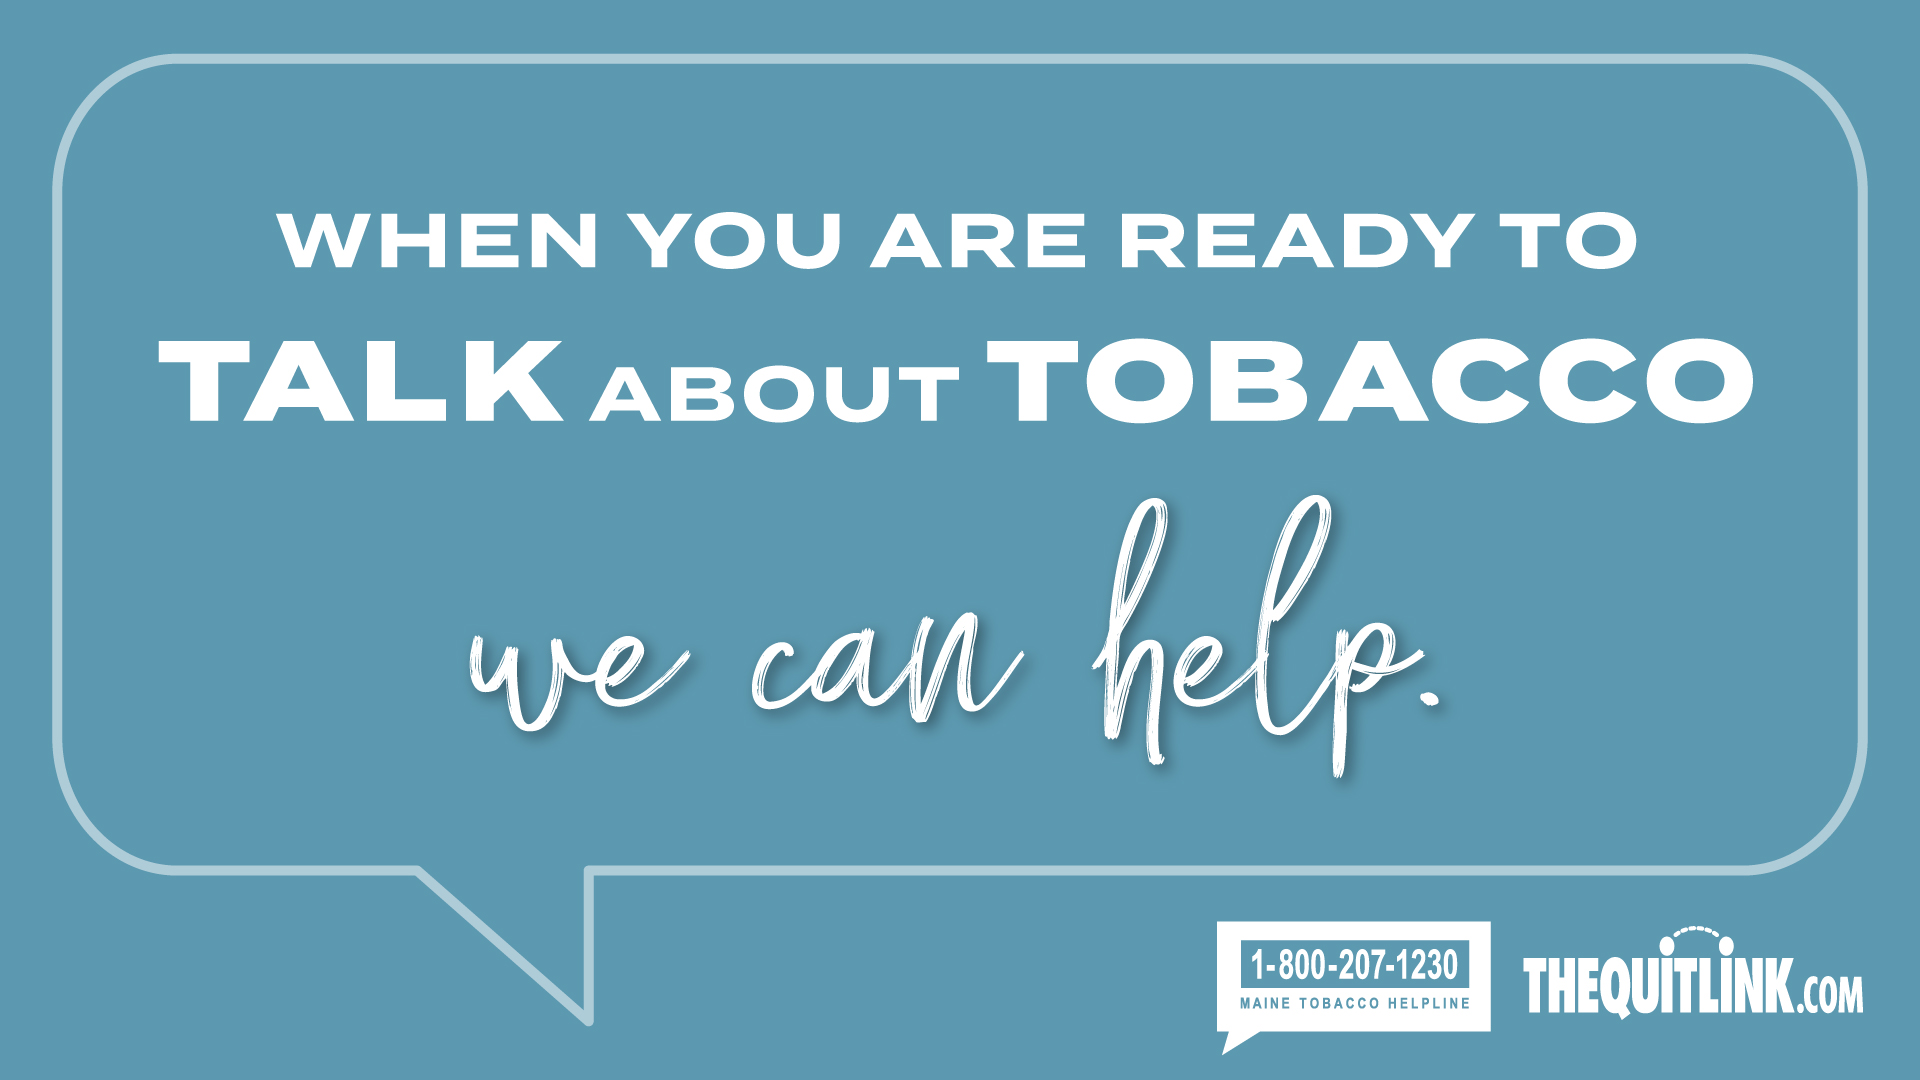 Provider Tools - Center for Tobacco Independence